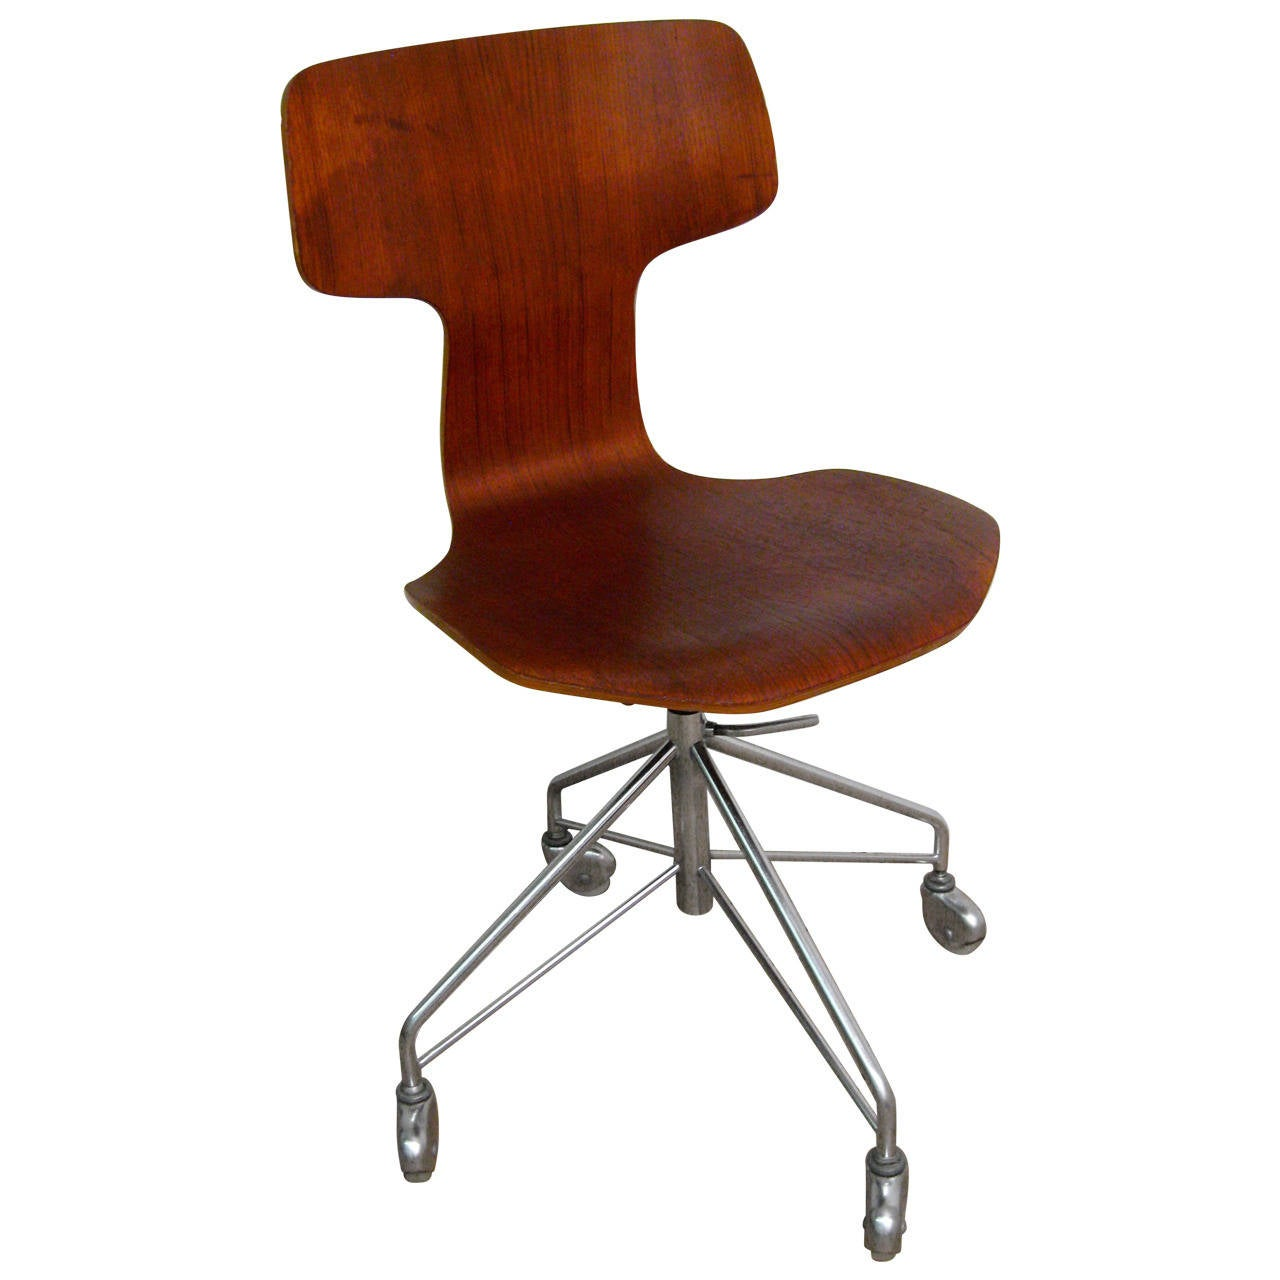 arne jacobsen for fritz hansen teak desk chair model 3103 at 1stdibs. Black Bedroom Furniture Sets. Home Design Ideas